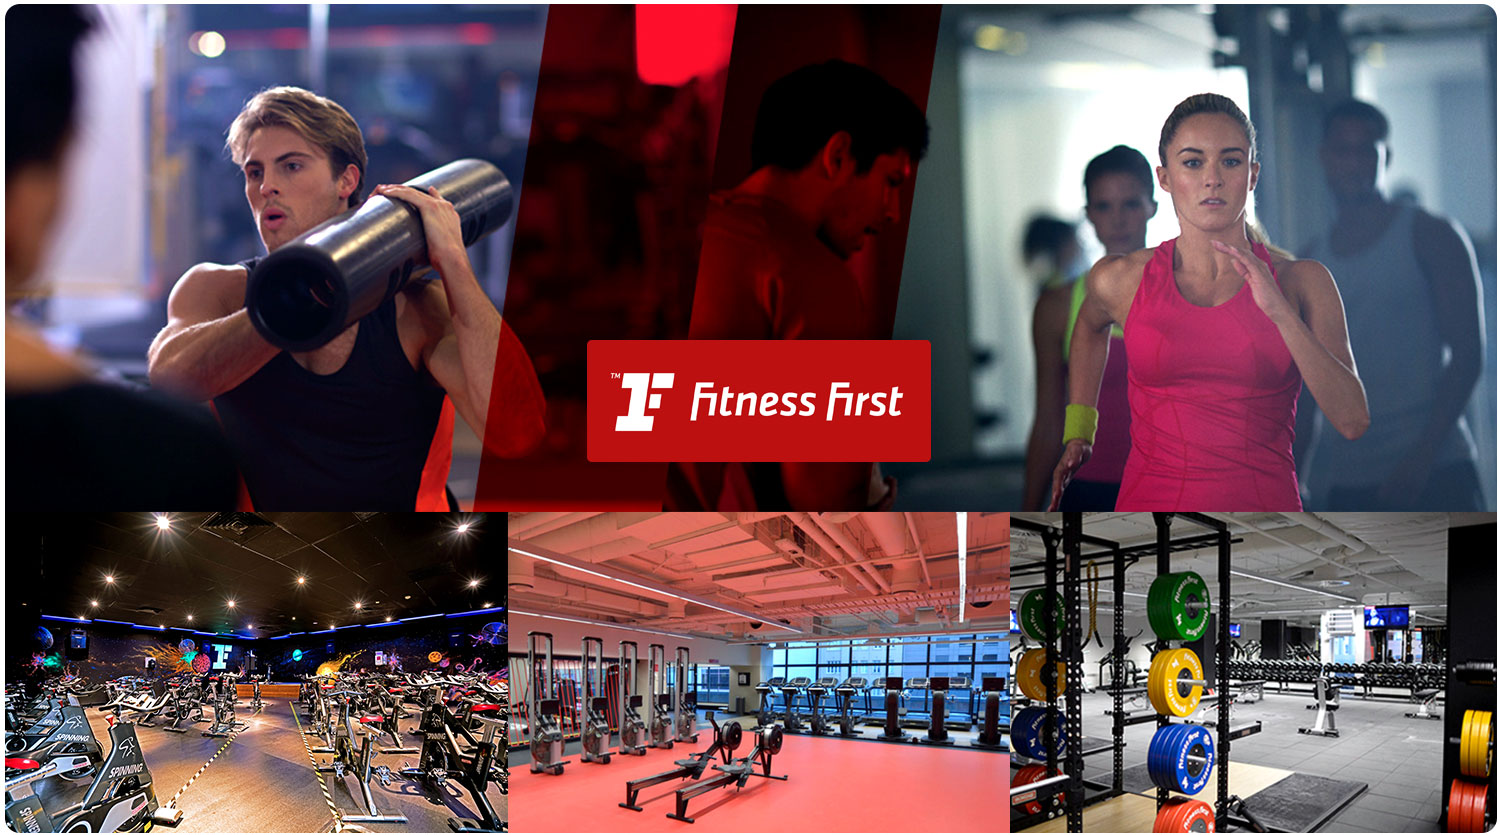 Start your Fitness Journey with Fitness First with only $14.95 for 14 days at Fitness First Sydney NSW. Experience our first class gym and freestyle classes inc. Pilates, HIIT and more. Take the first step with Fitness First Sydney NSW.